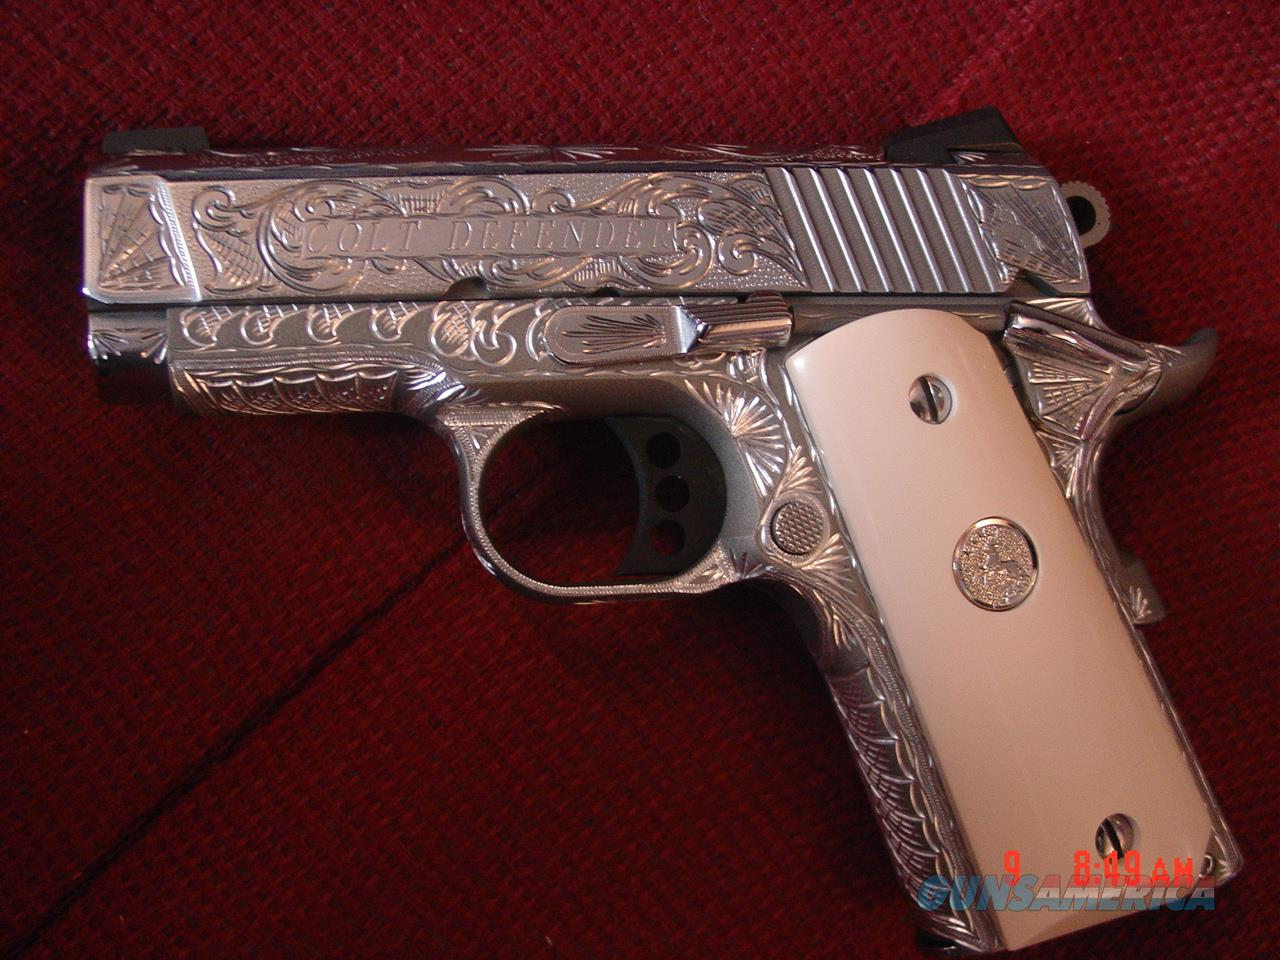 "Colt Defender 45,3"",full deep hand engraved & polished by Flannery Engraving,2 mags,bonded ivory & regular grips, box & certificate. awesome one of a kind work of art !!  Guns > Pistols > Colt Automatic Pistols (1911 & Var)"